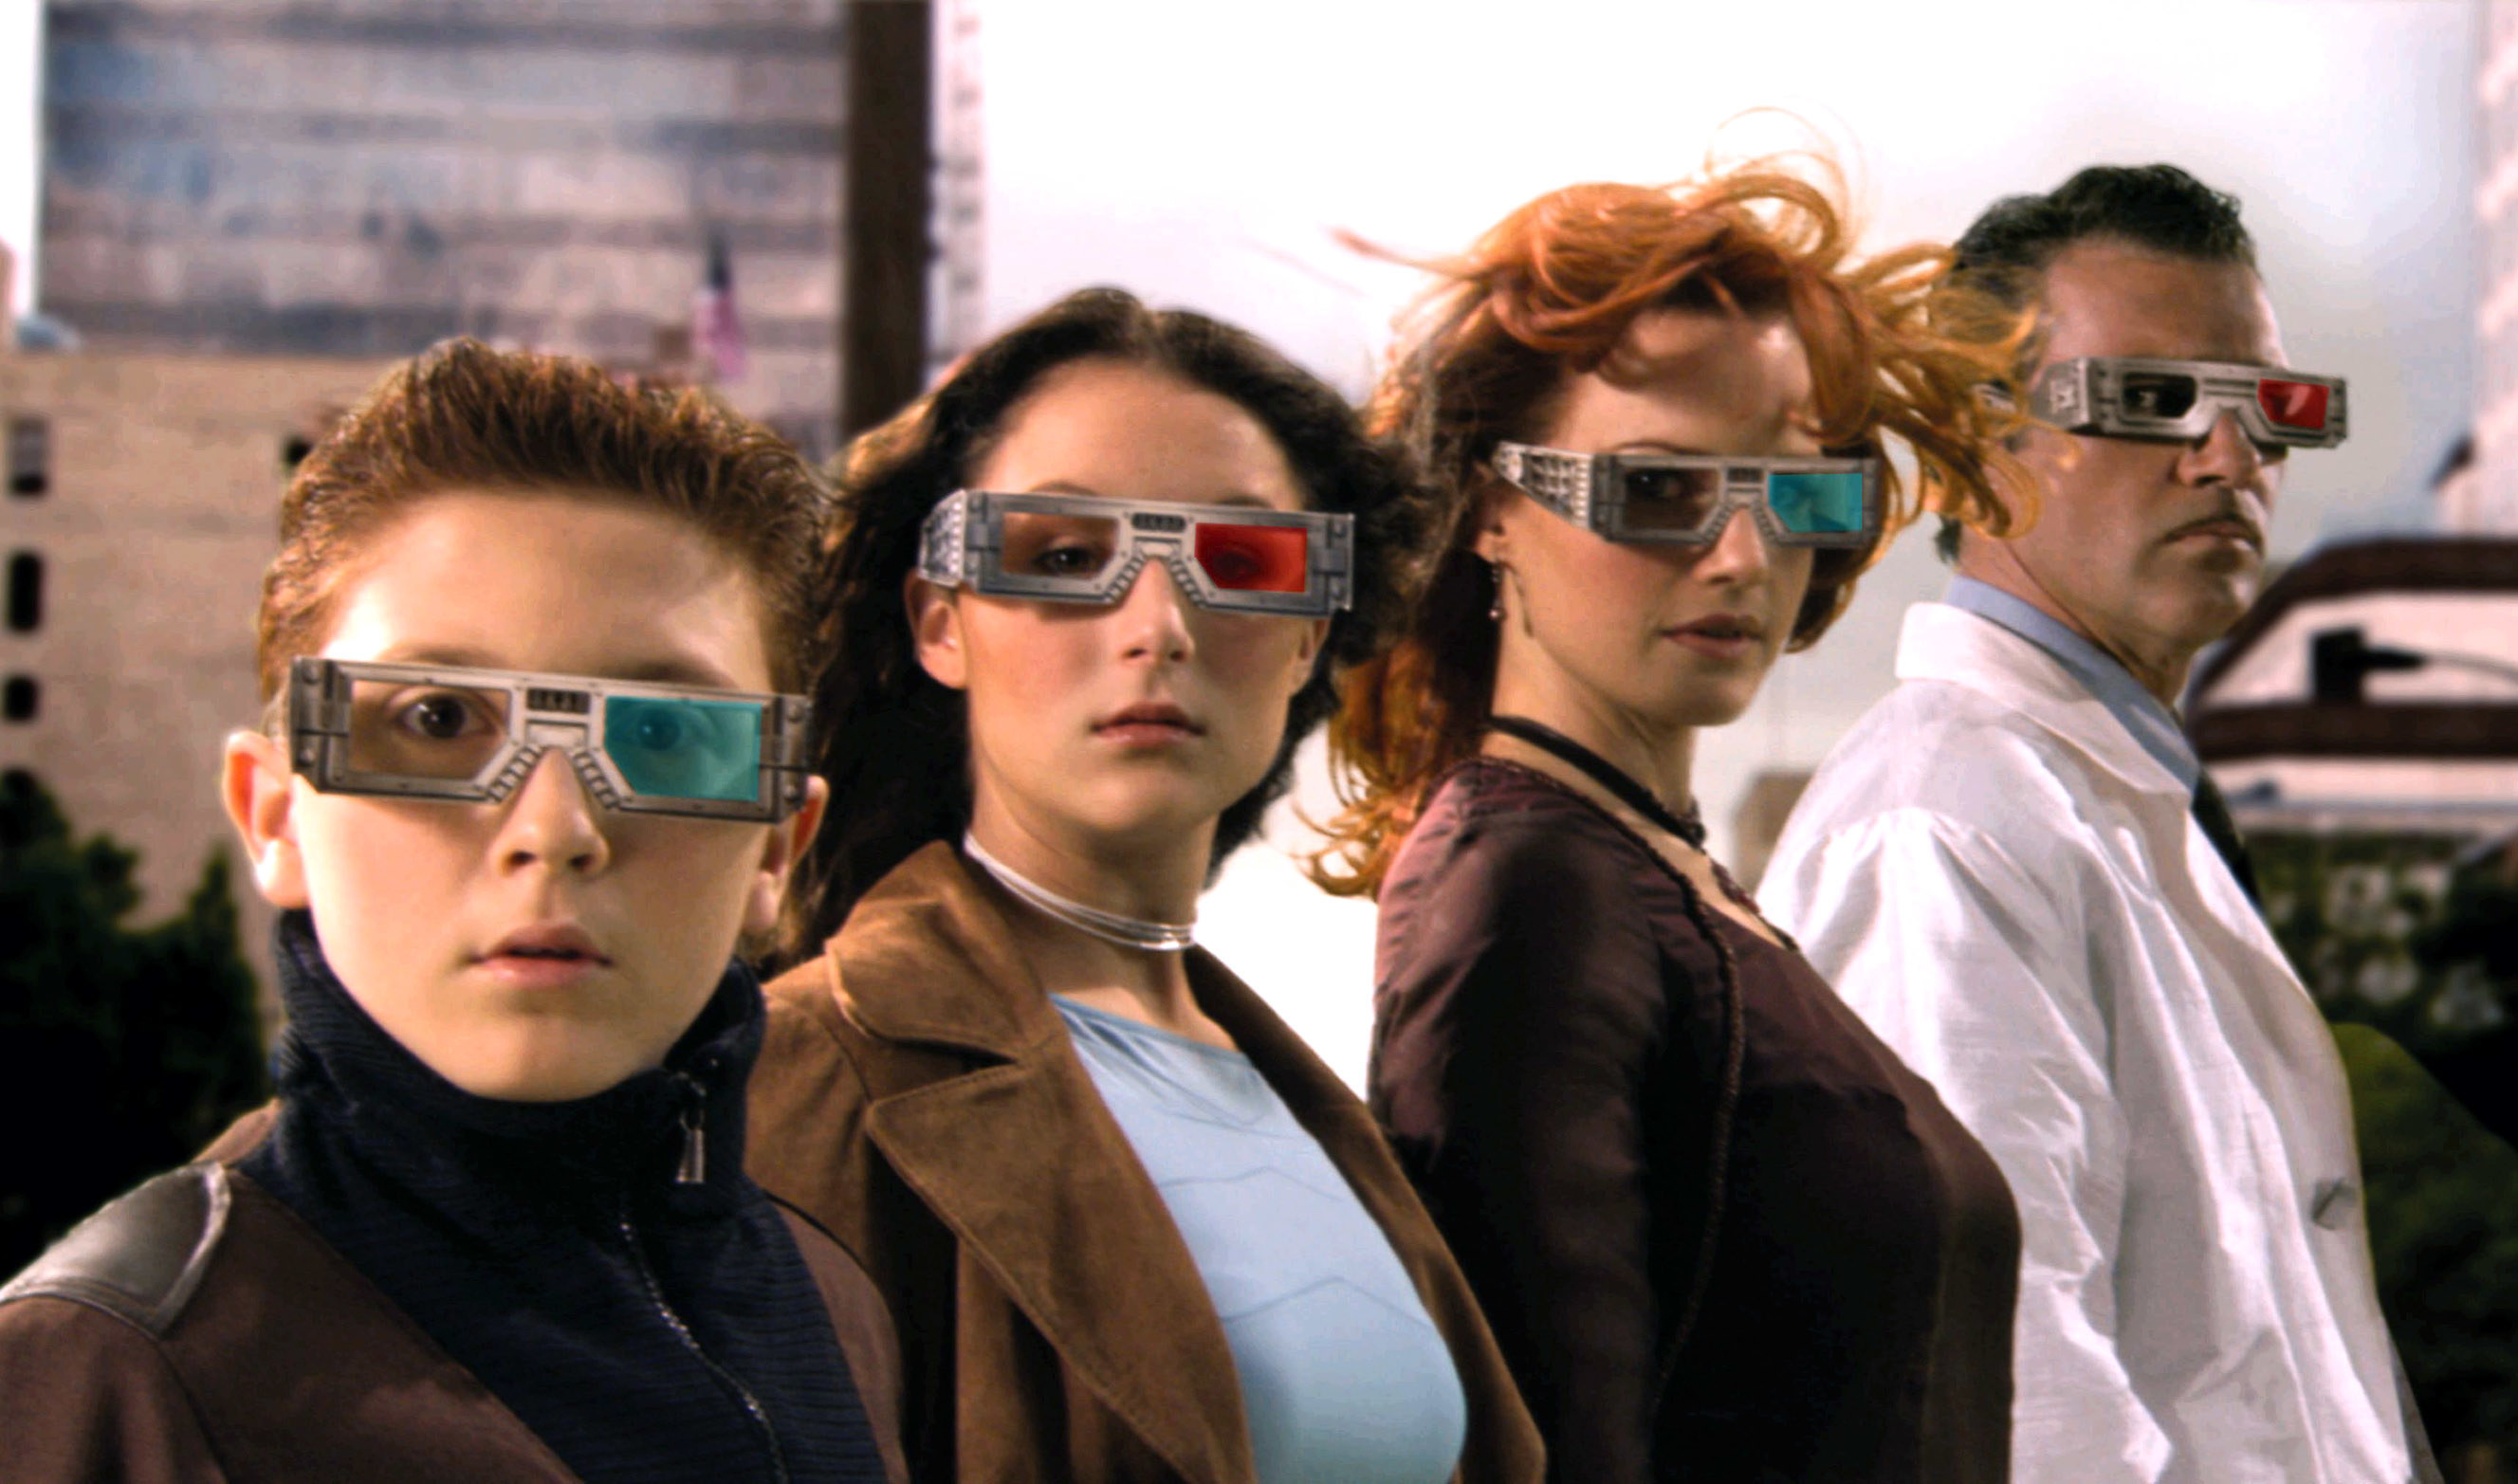 The Spy Kids family standing in line while wearing their high-tech spy glasses